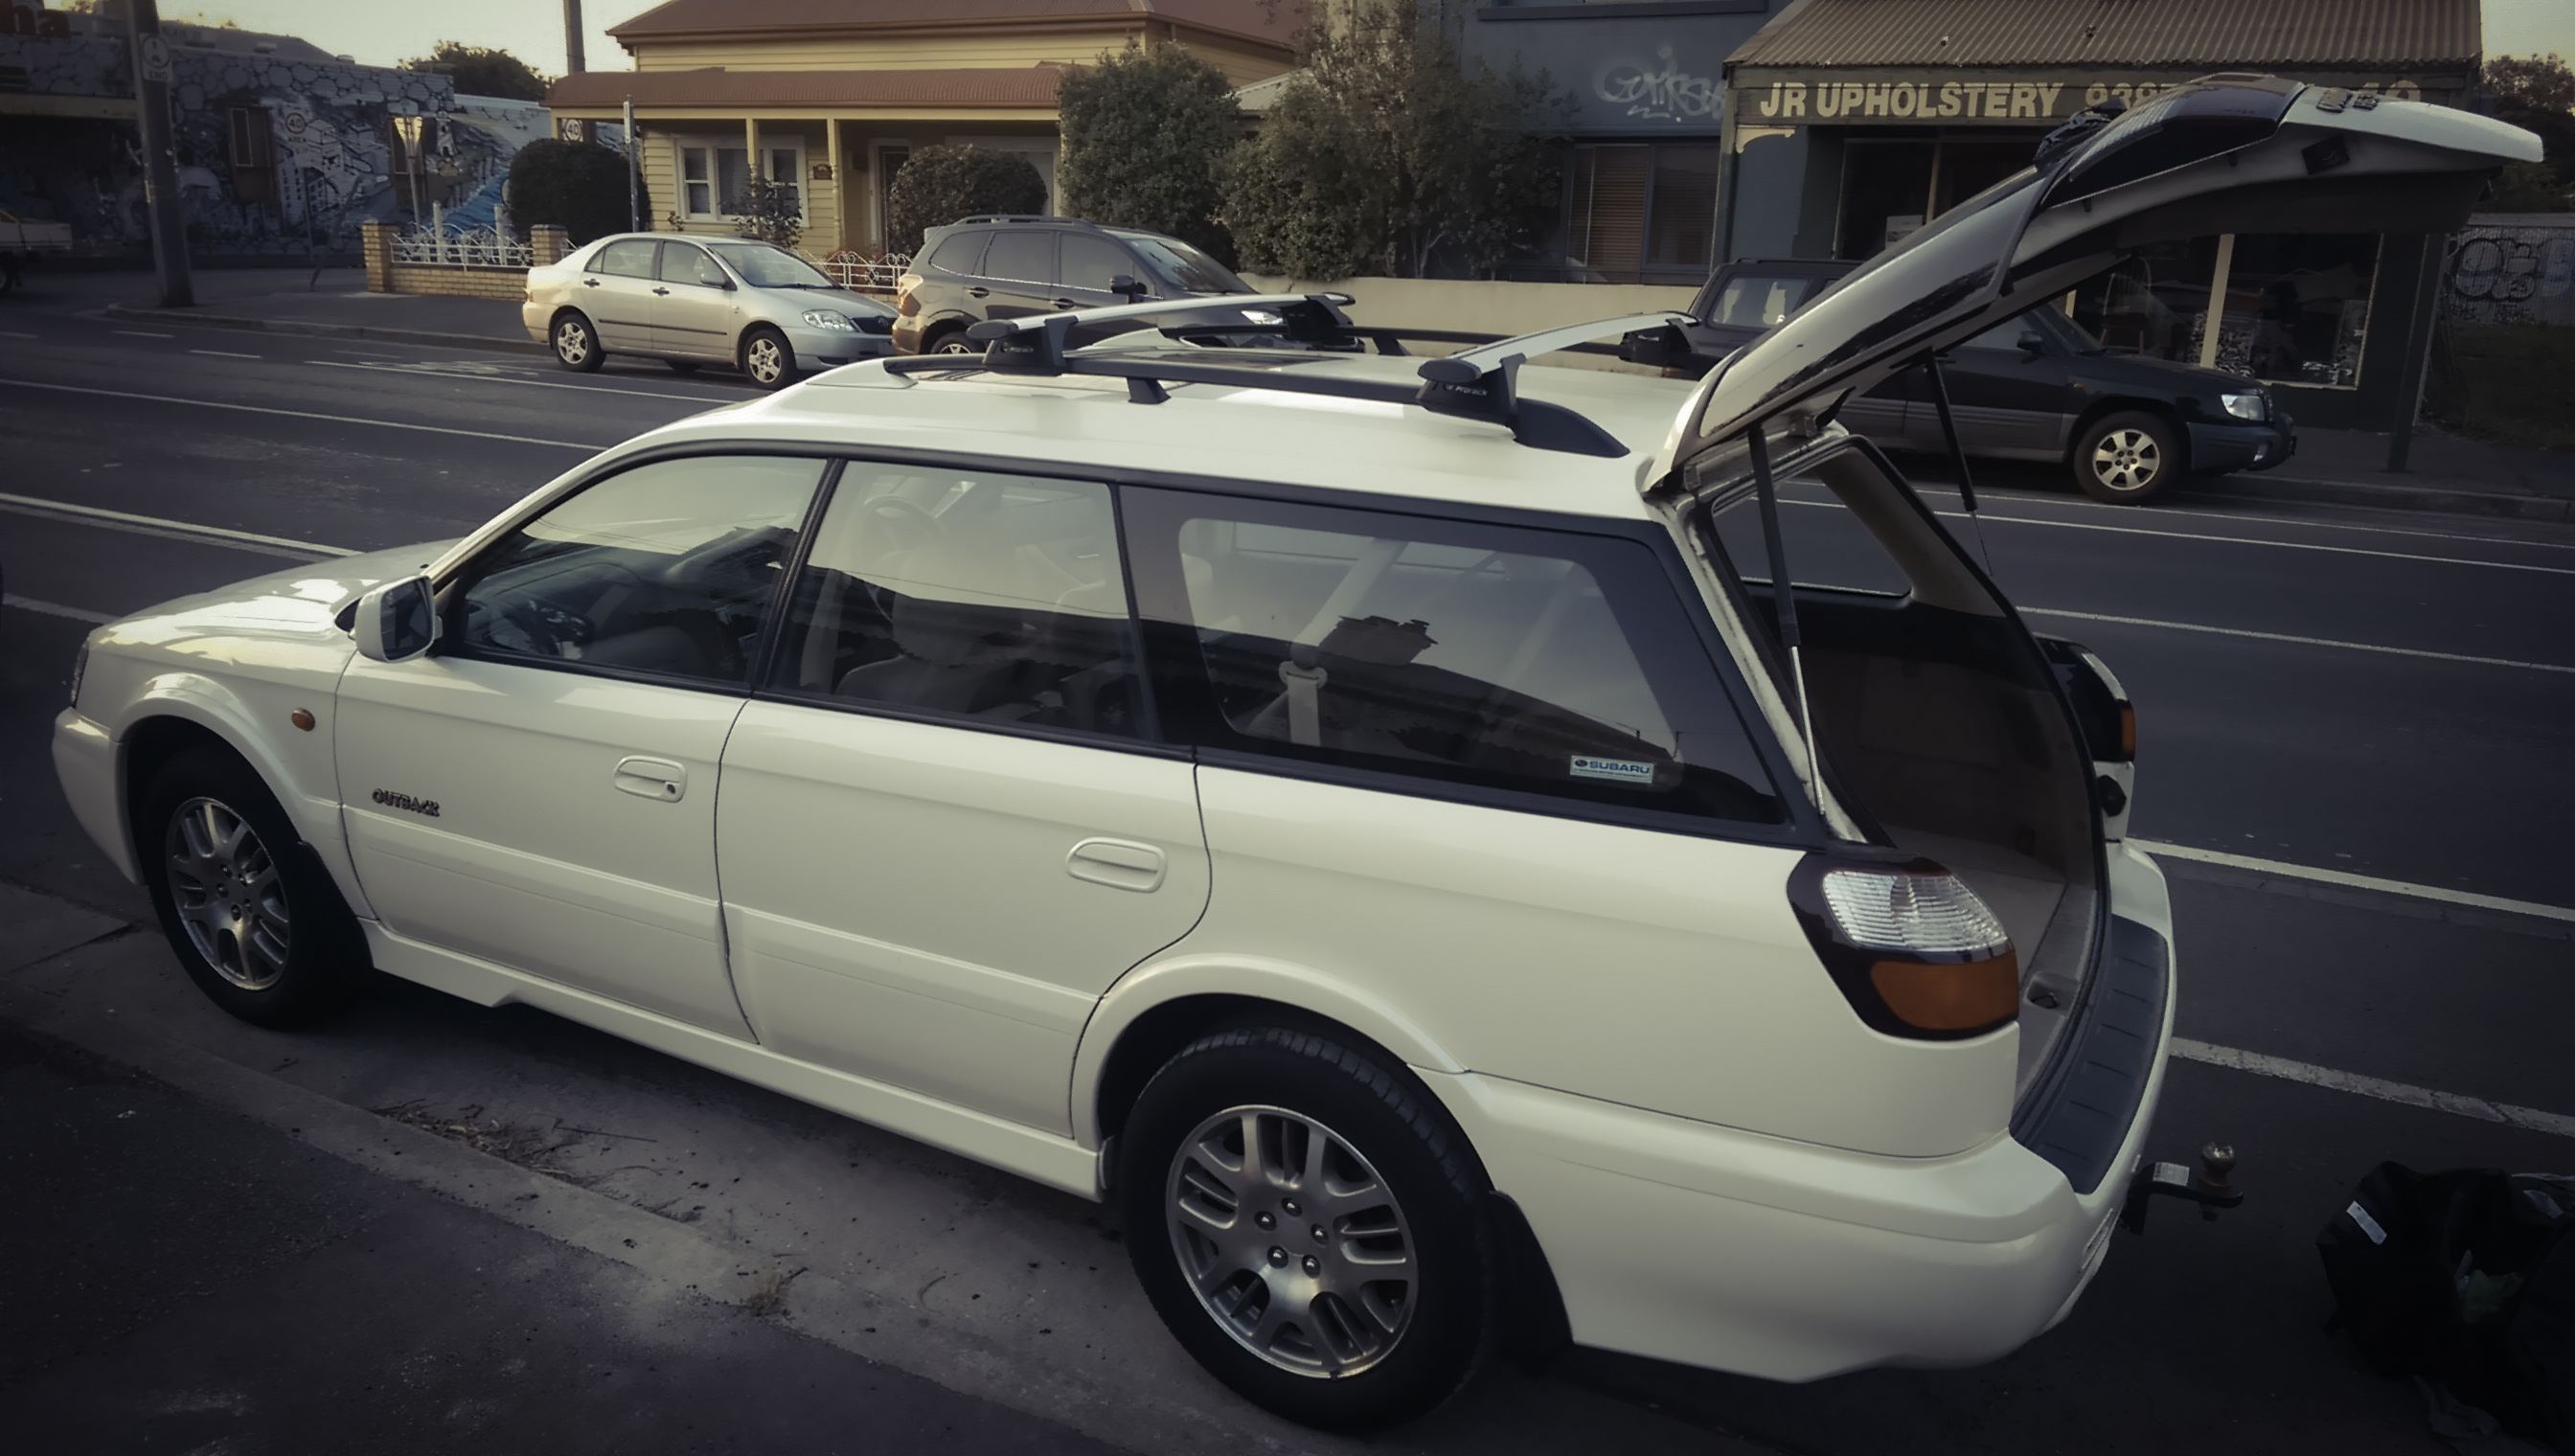 Picture of Rhys' 2001 Subaru Outback